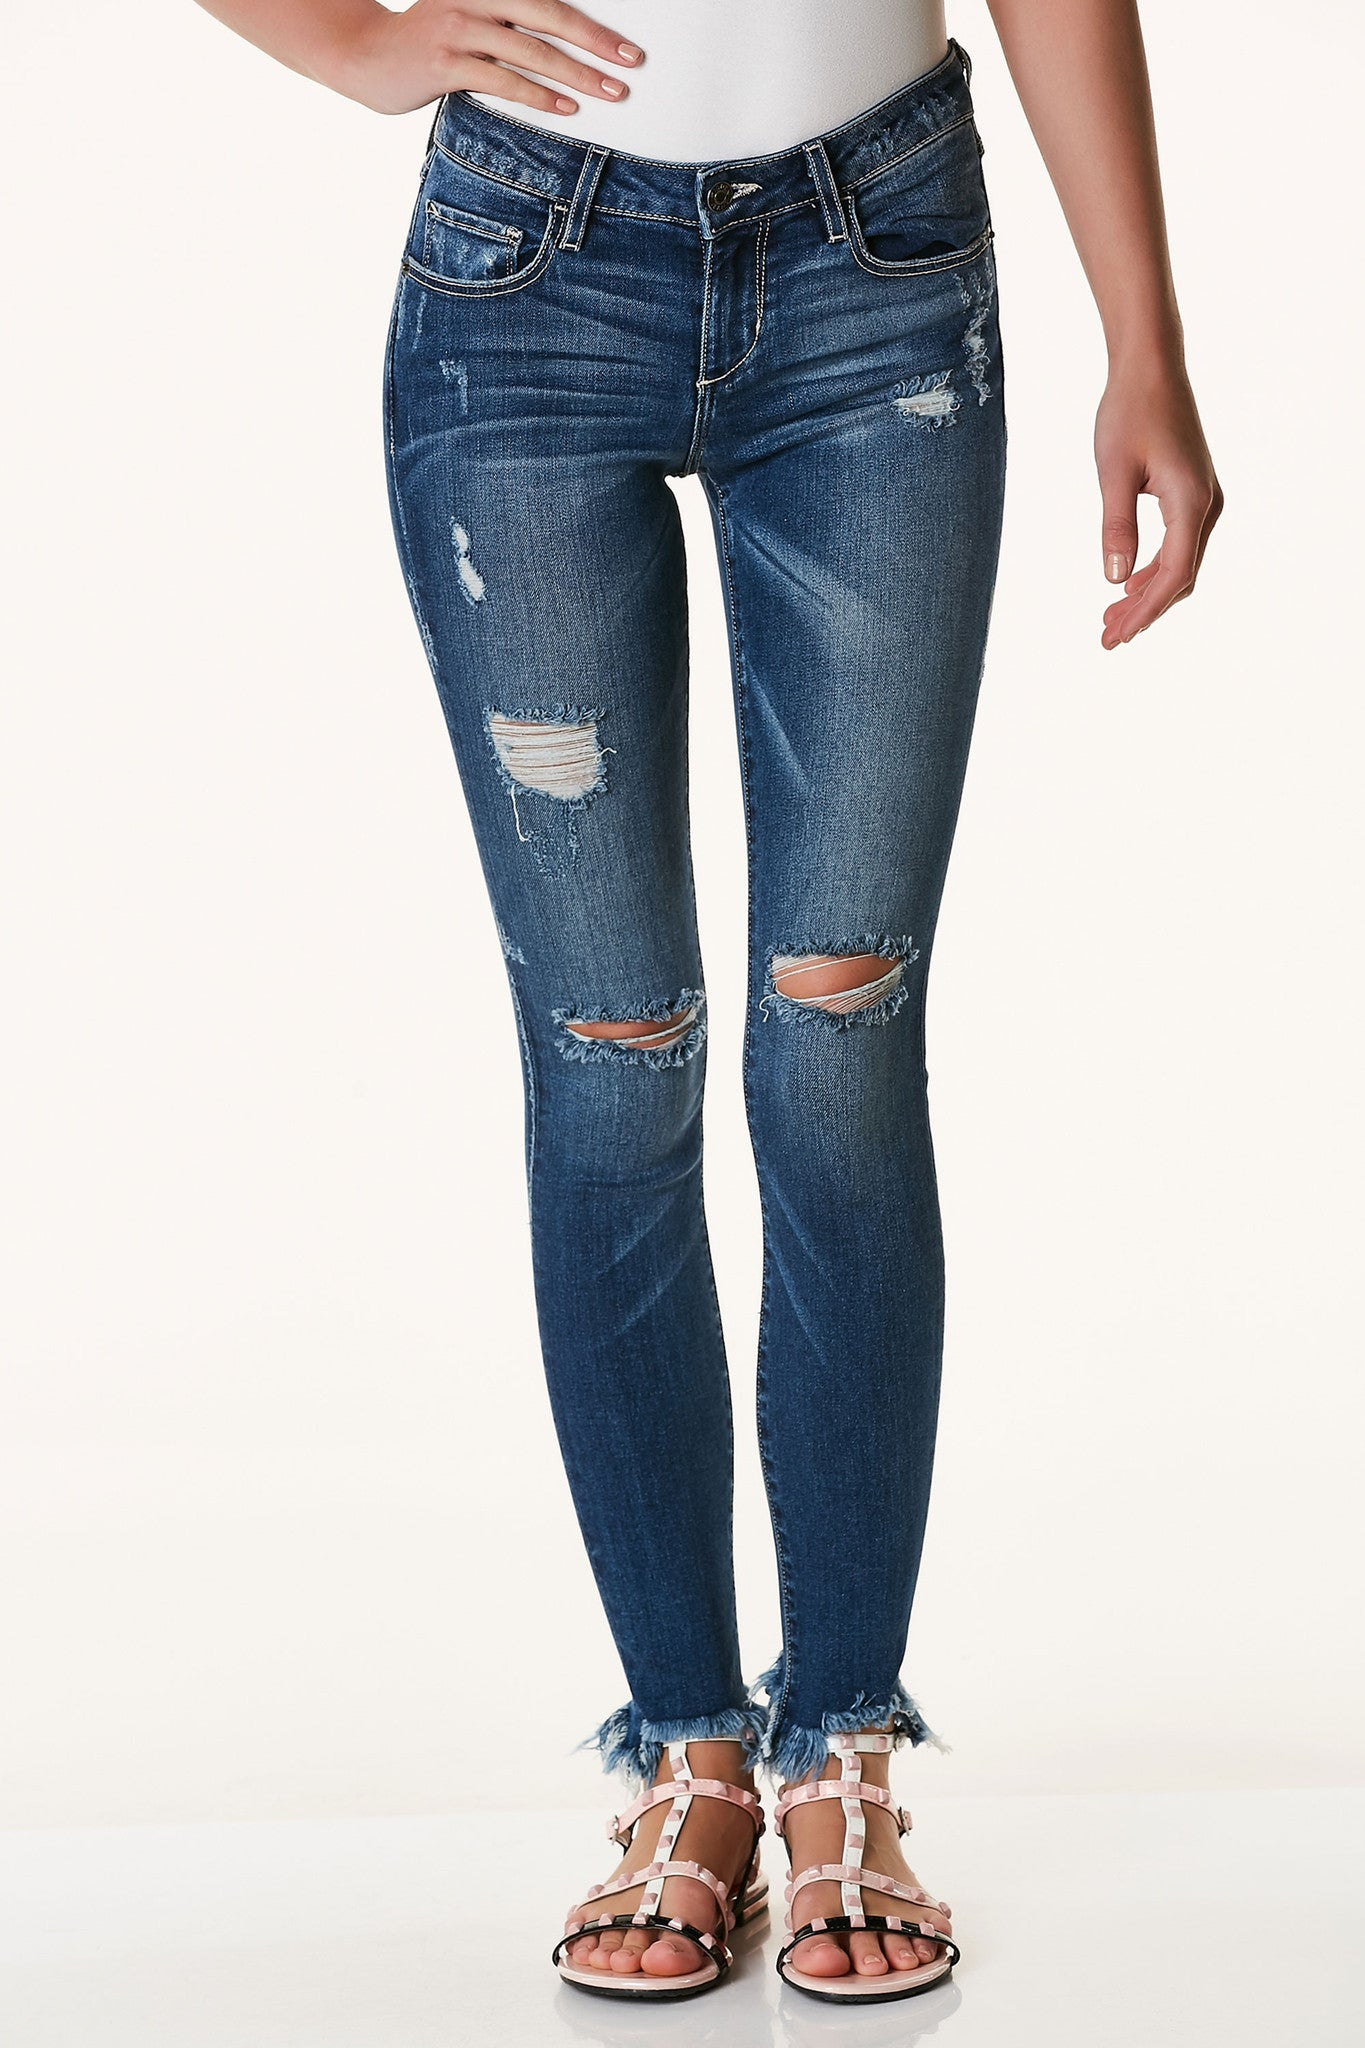 Basic skinny jeans with classic denim wash with slight vintage style fading. Distressing throughout with trendy frayed raw uneven hem.